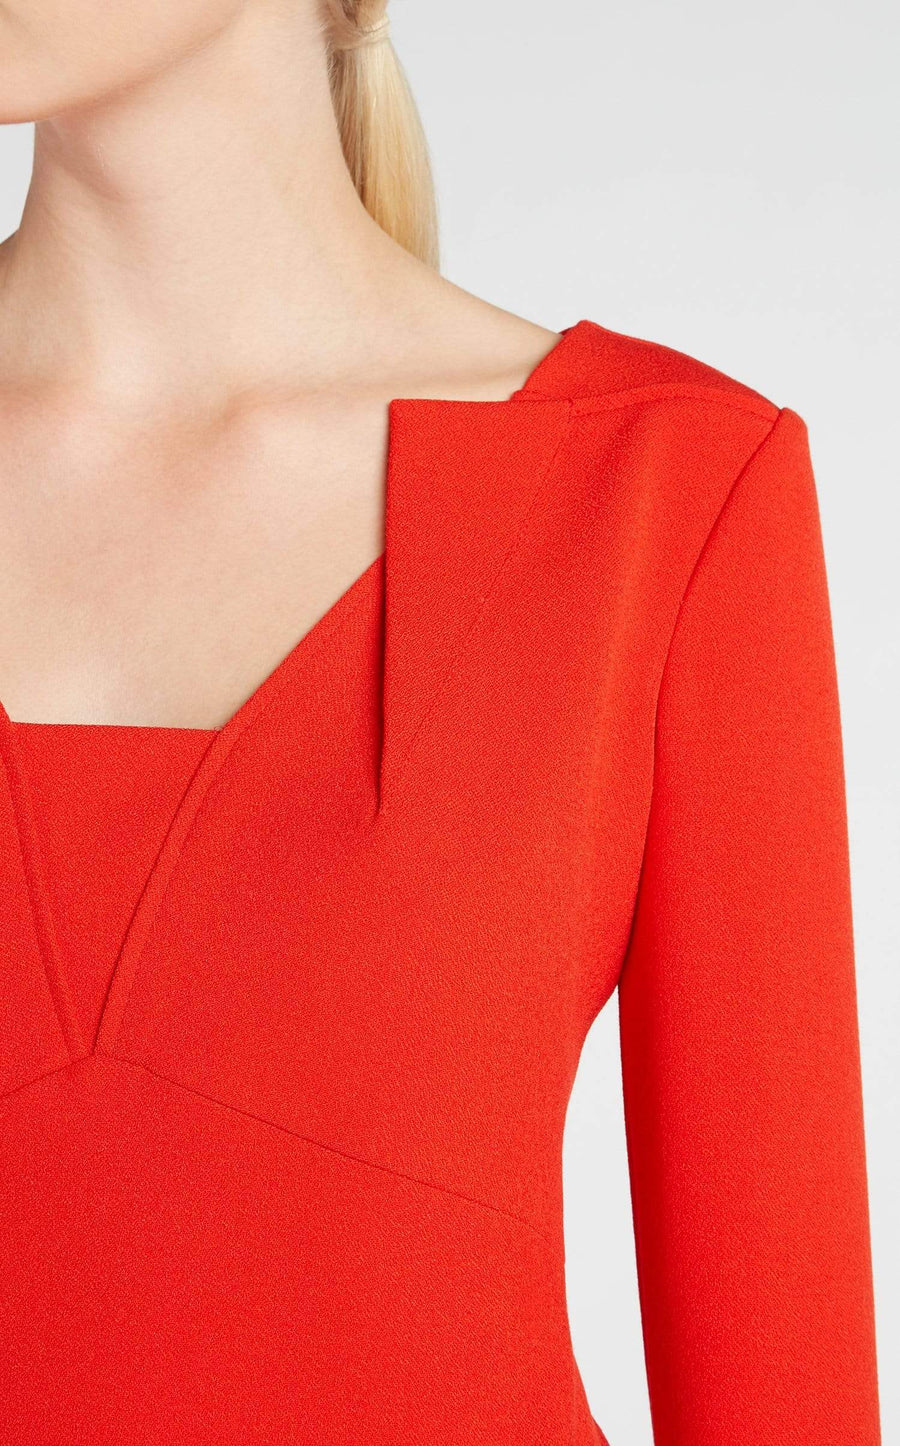 Strand Top In Poppy Red from Roland Mouret